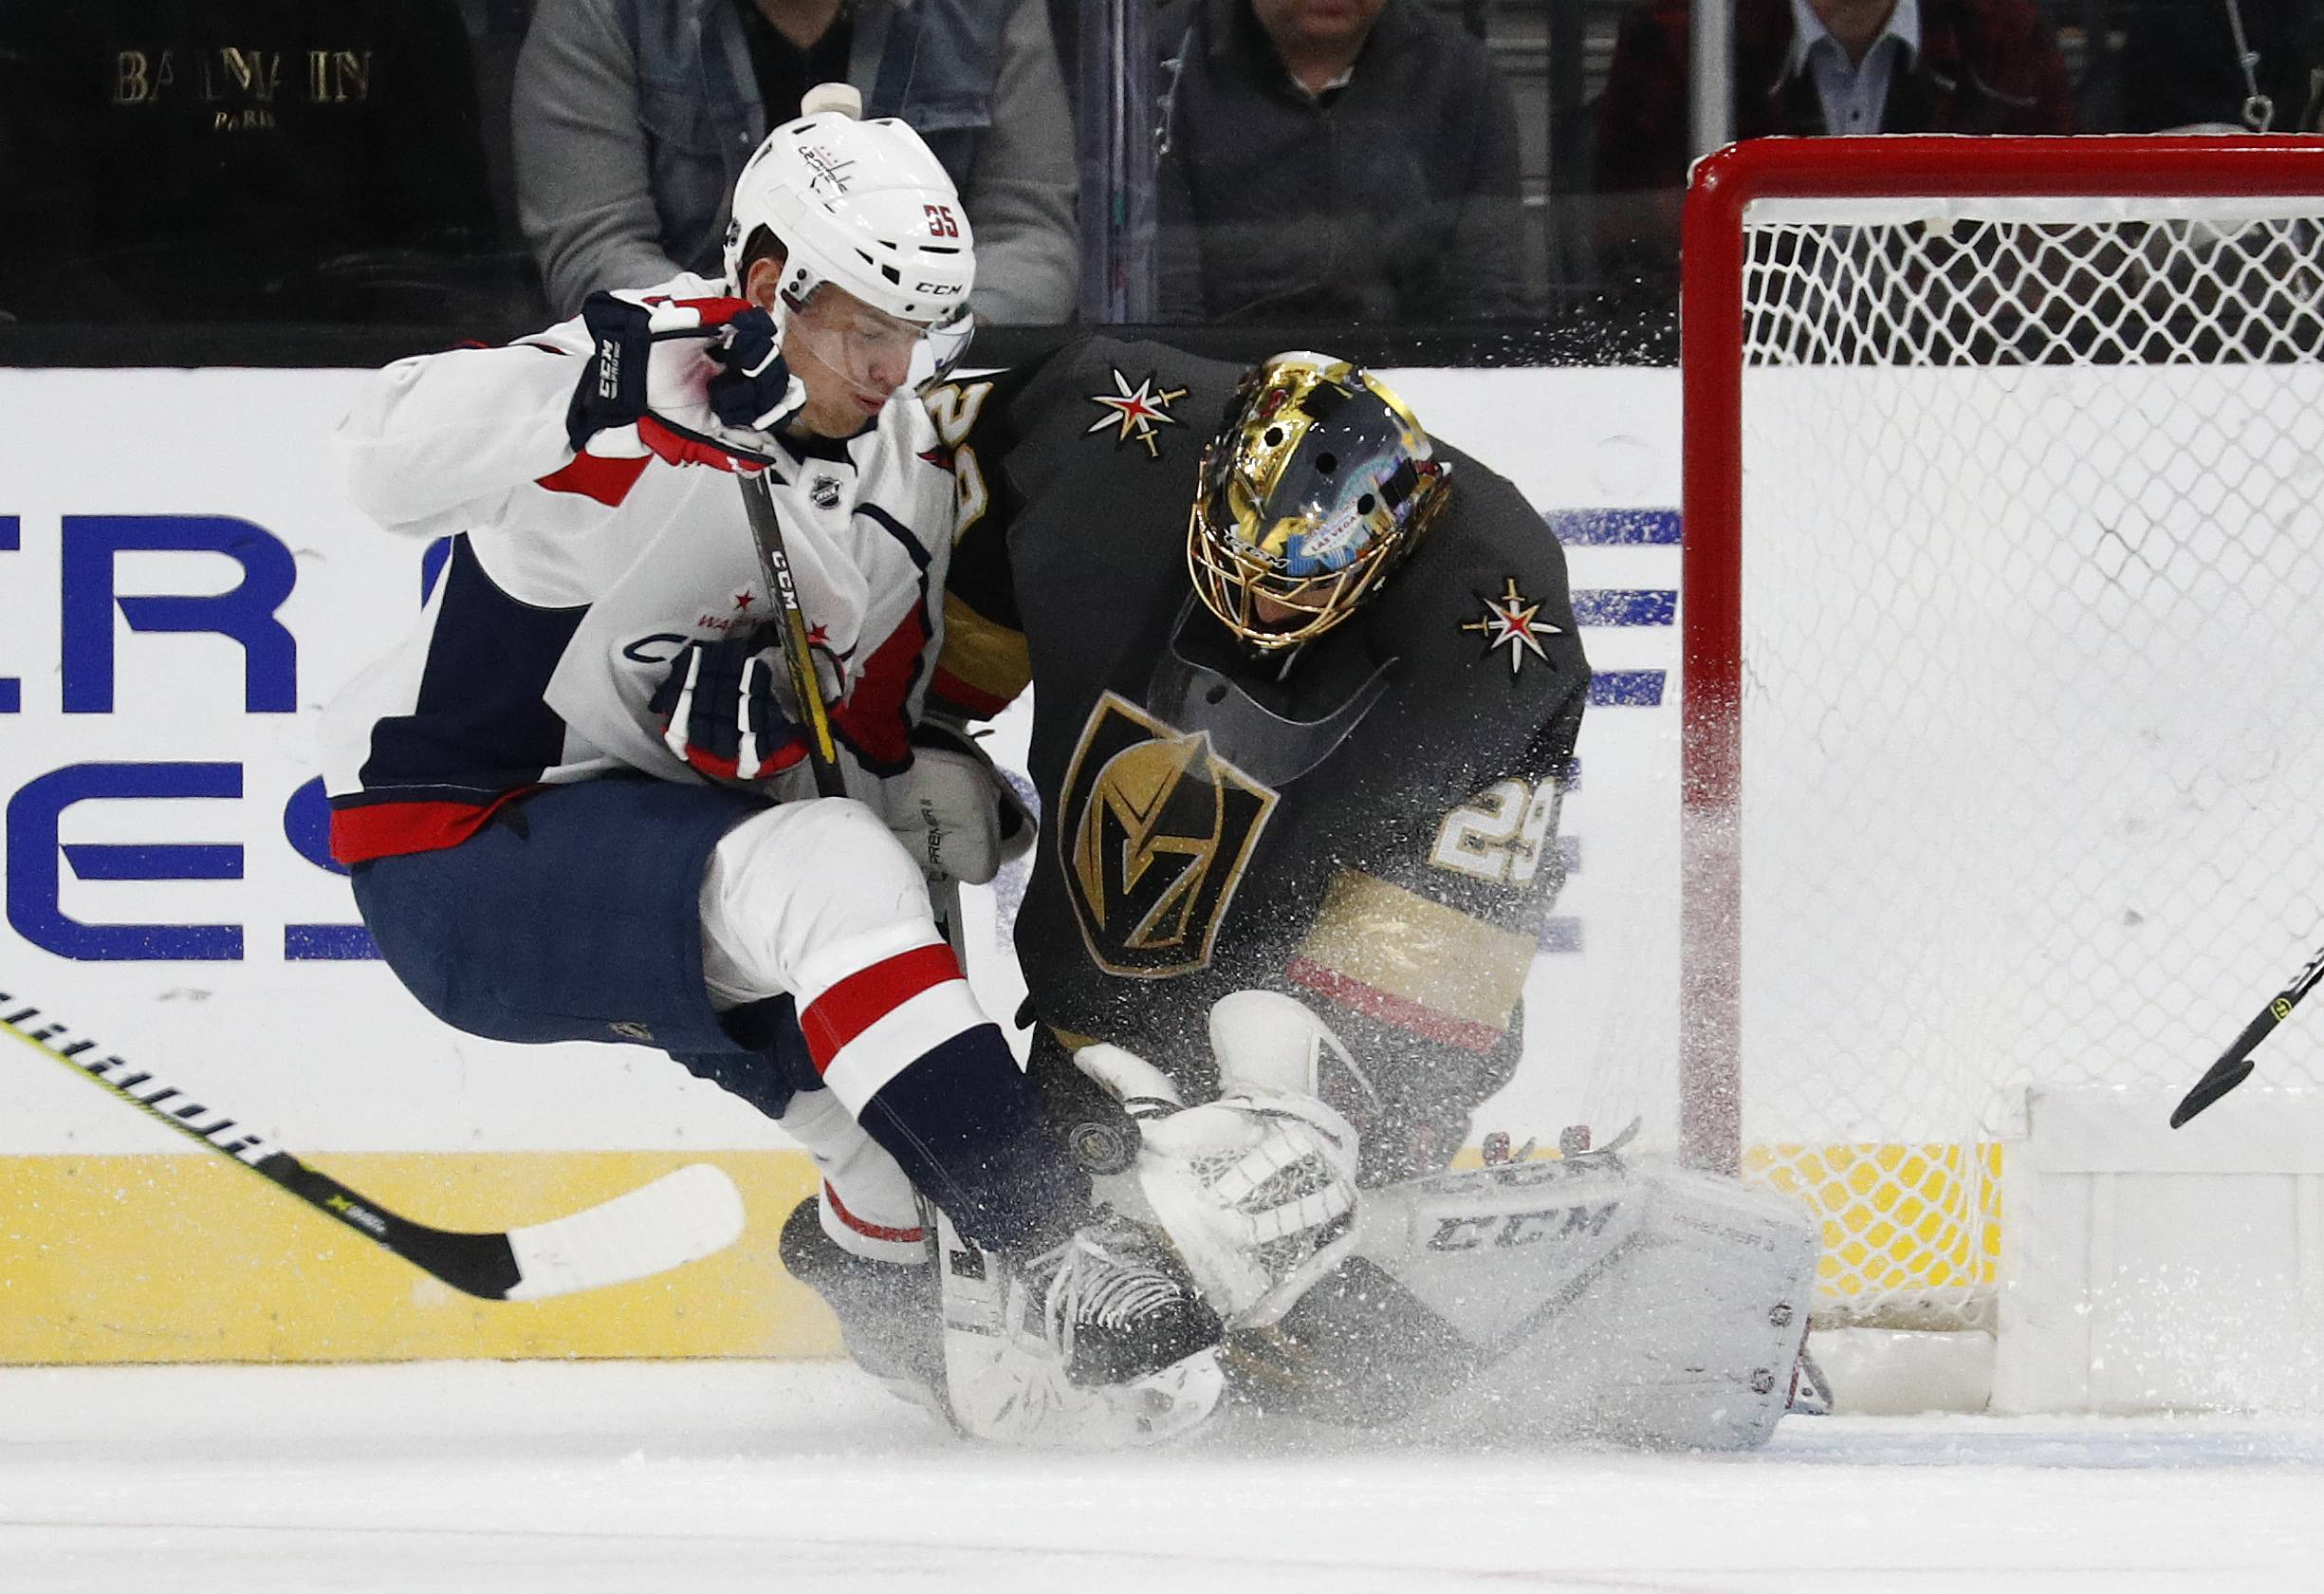 Vegas Golden Knights goaltender Marc-Andre Fleury, here blocking a shot by Washington's Andre Burakovsky, is one reason the Knights are on such a roll of late.